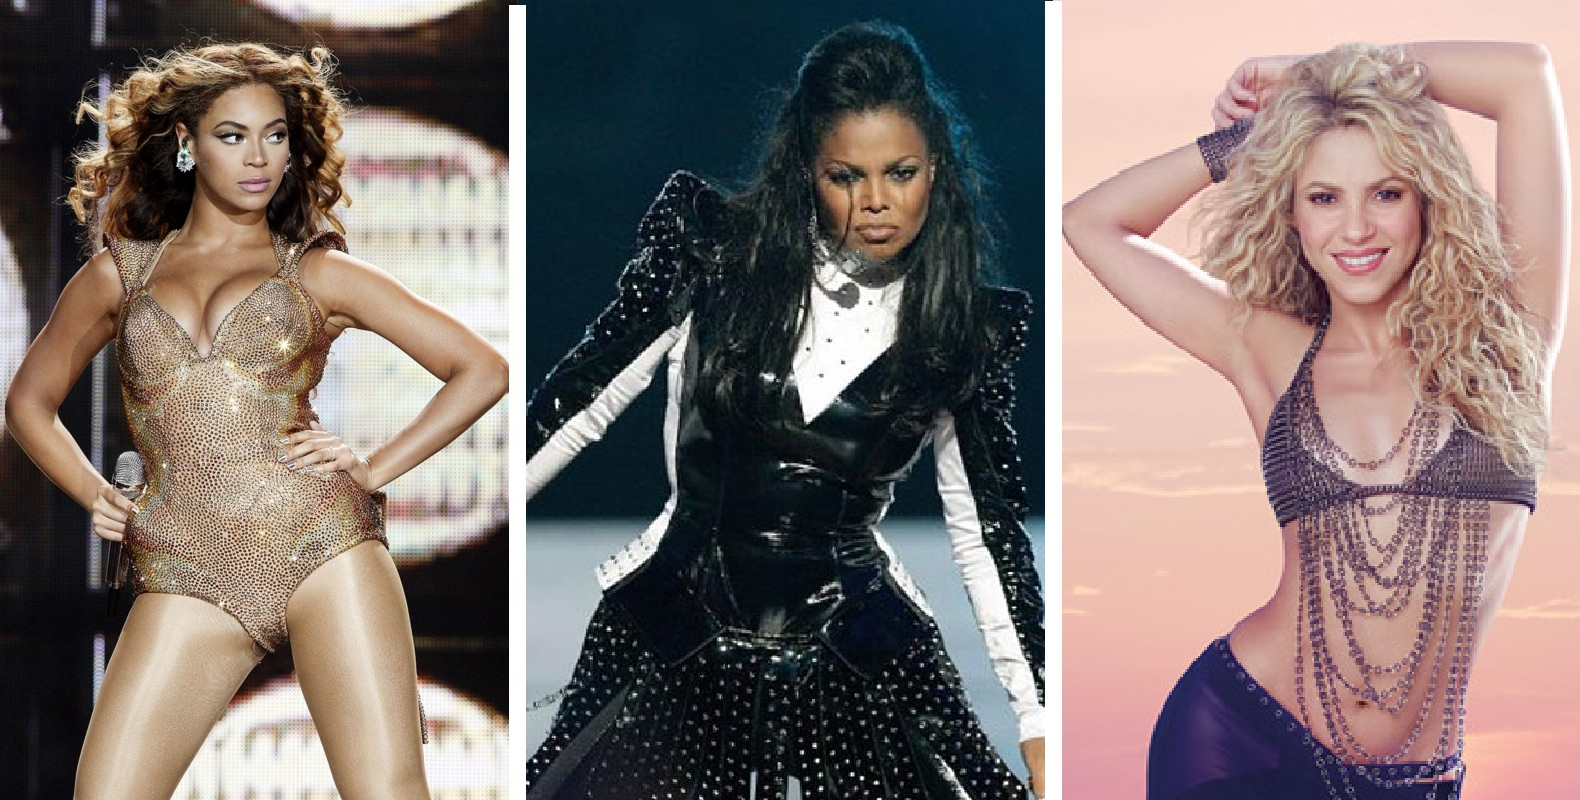 Poll: Janet, Madonna, Beyonce or Shakira? Who's the best dancer of them all. Vote here!